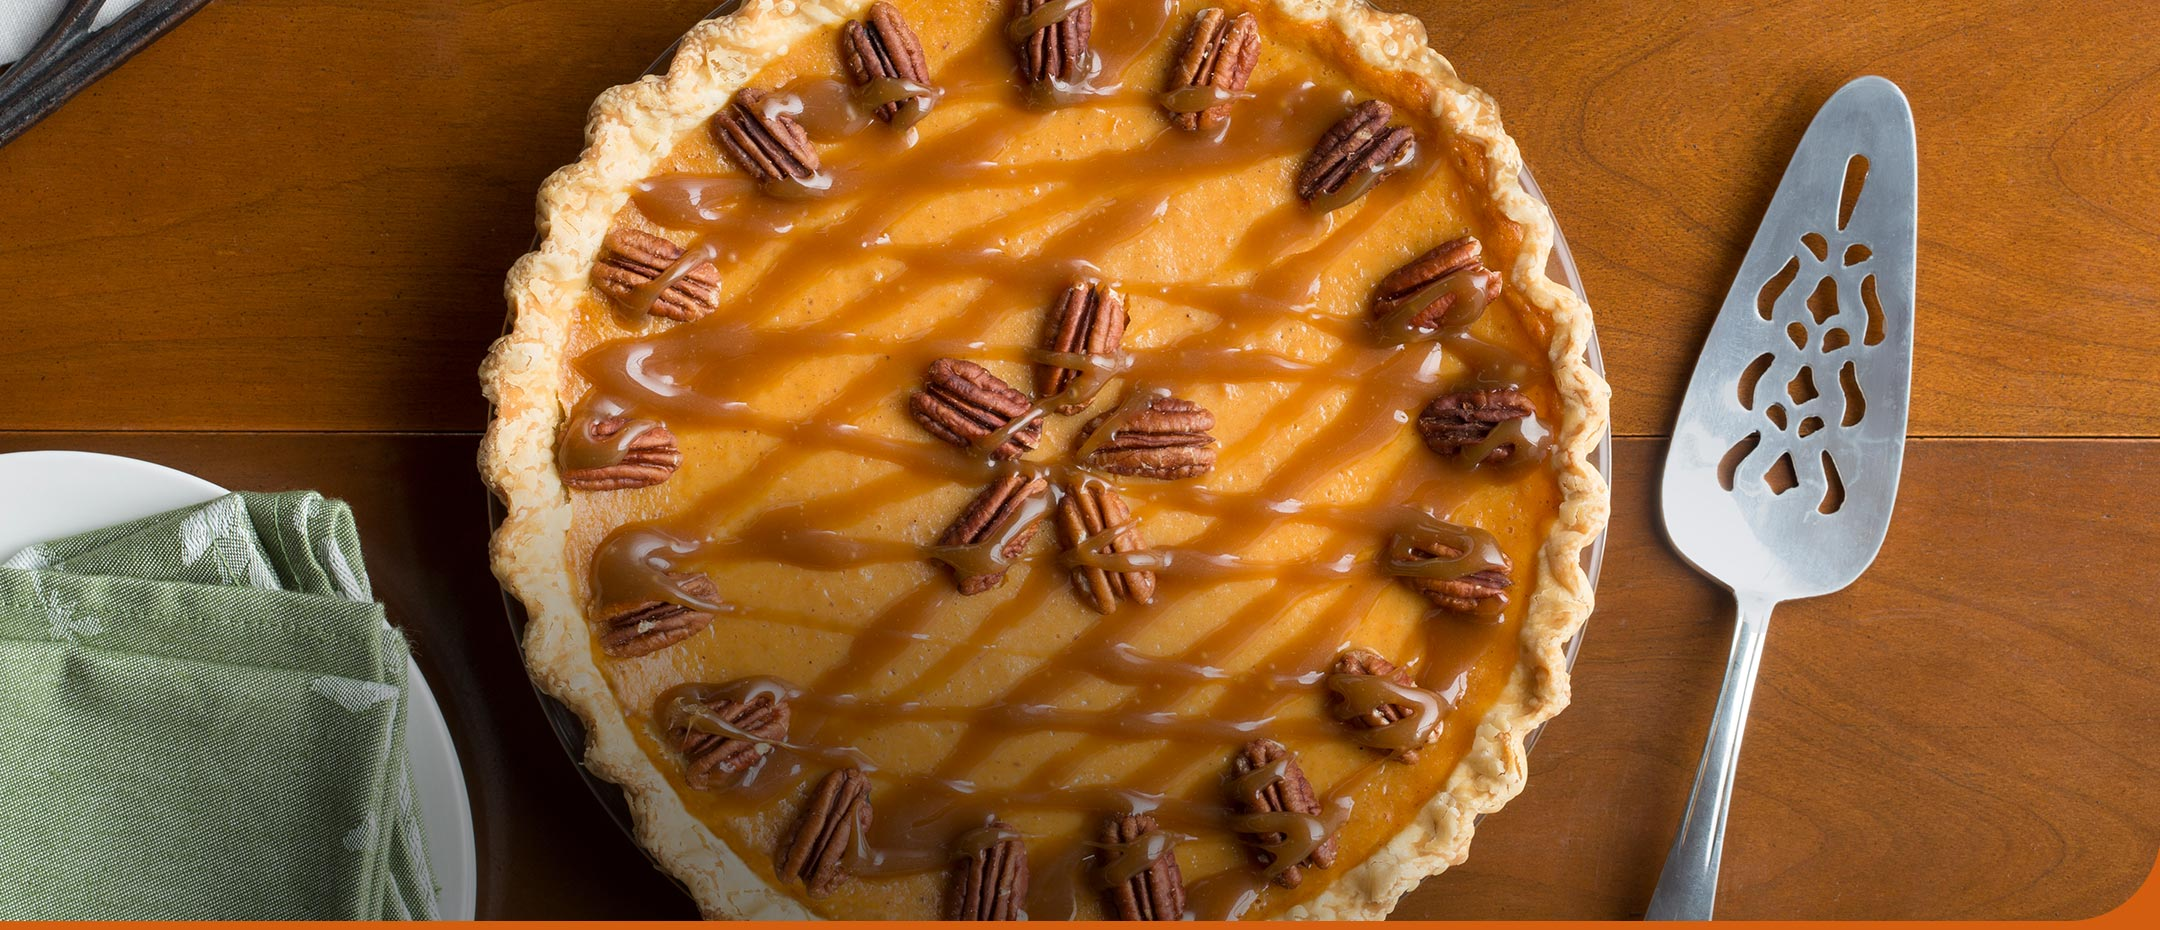 Classic Sweet Potato Pie - Try the easy Praline Pecan Topping for a twist on your classic favorite. Bake it!